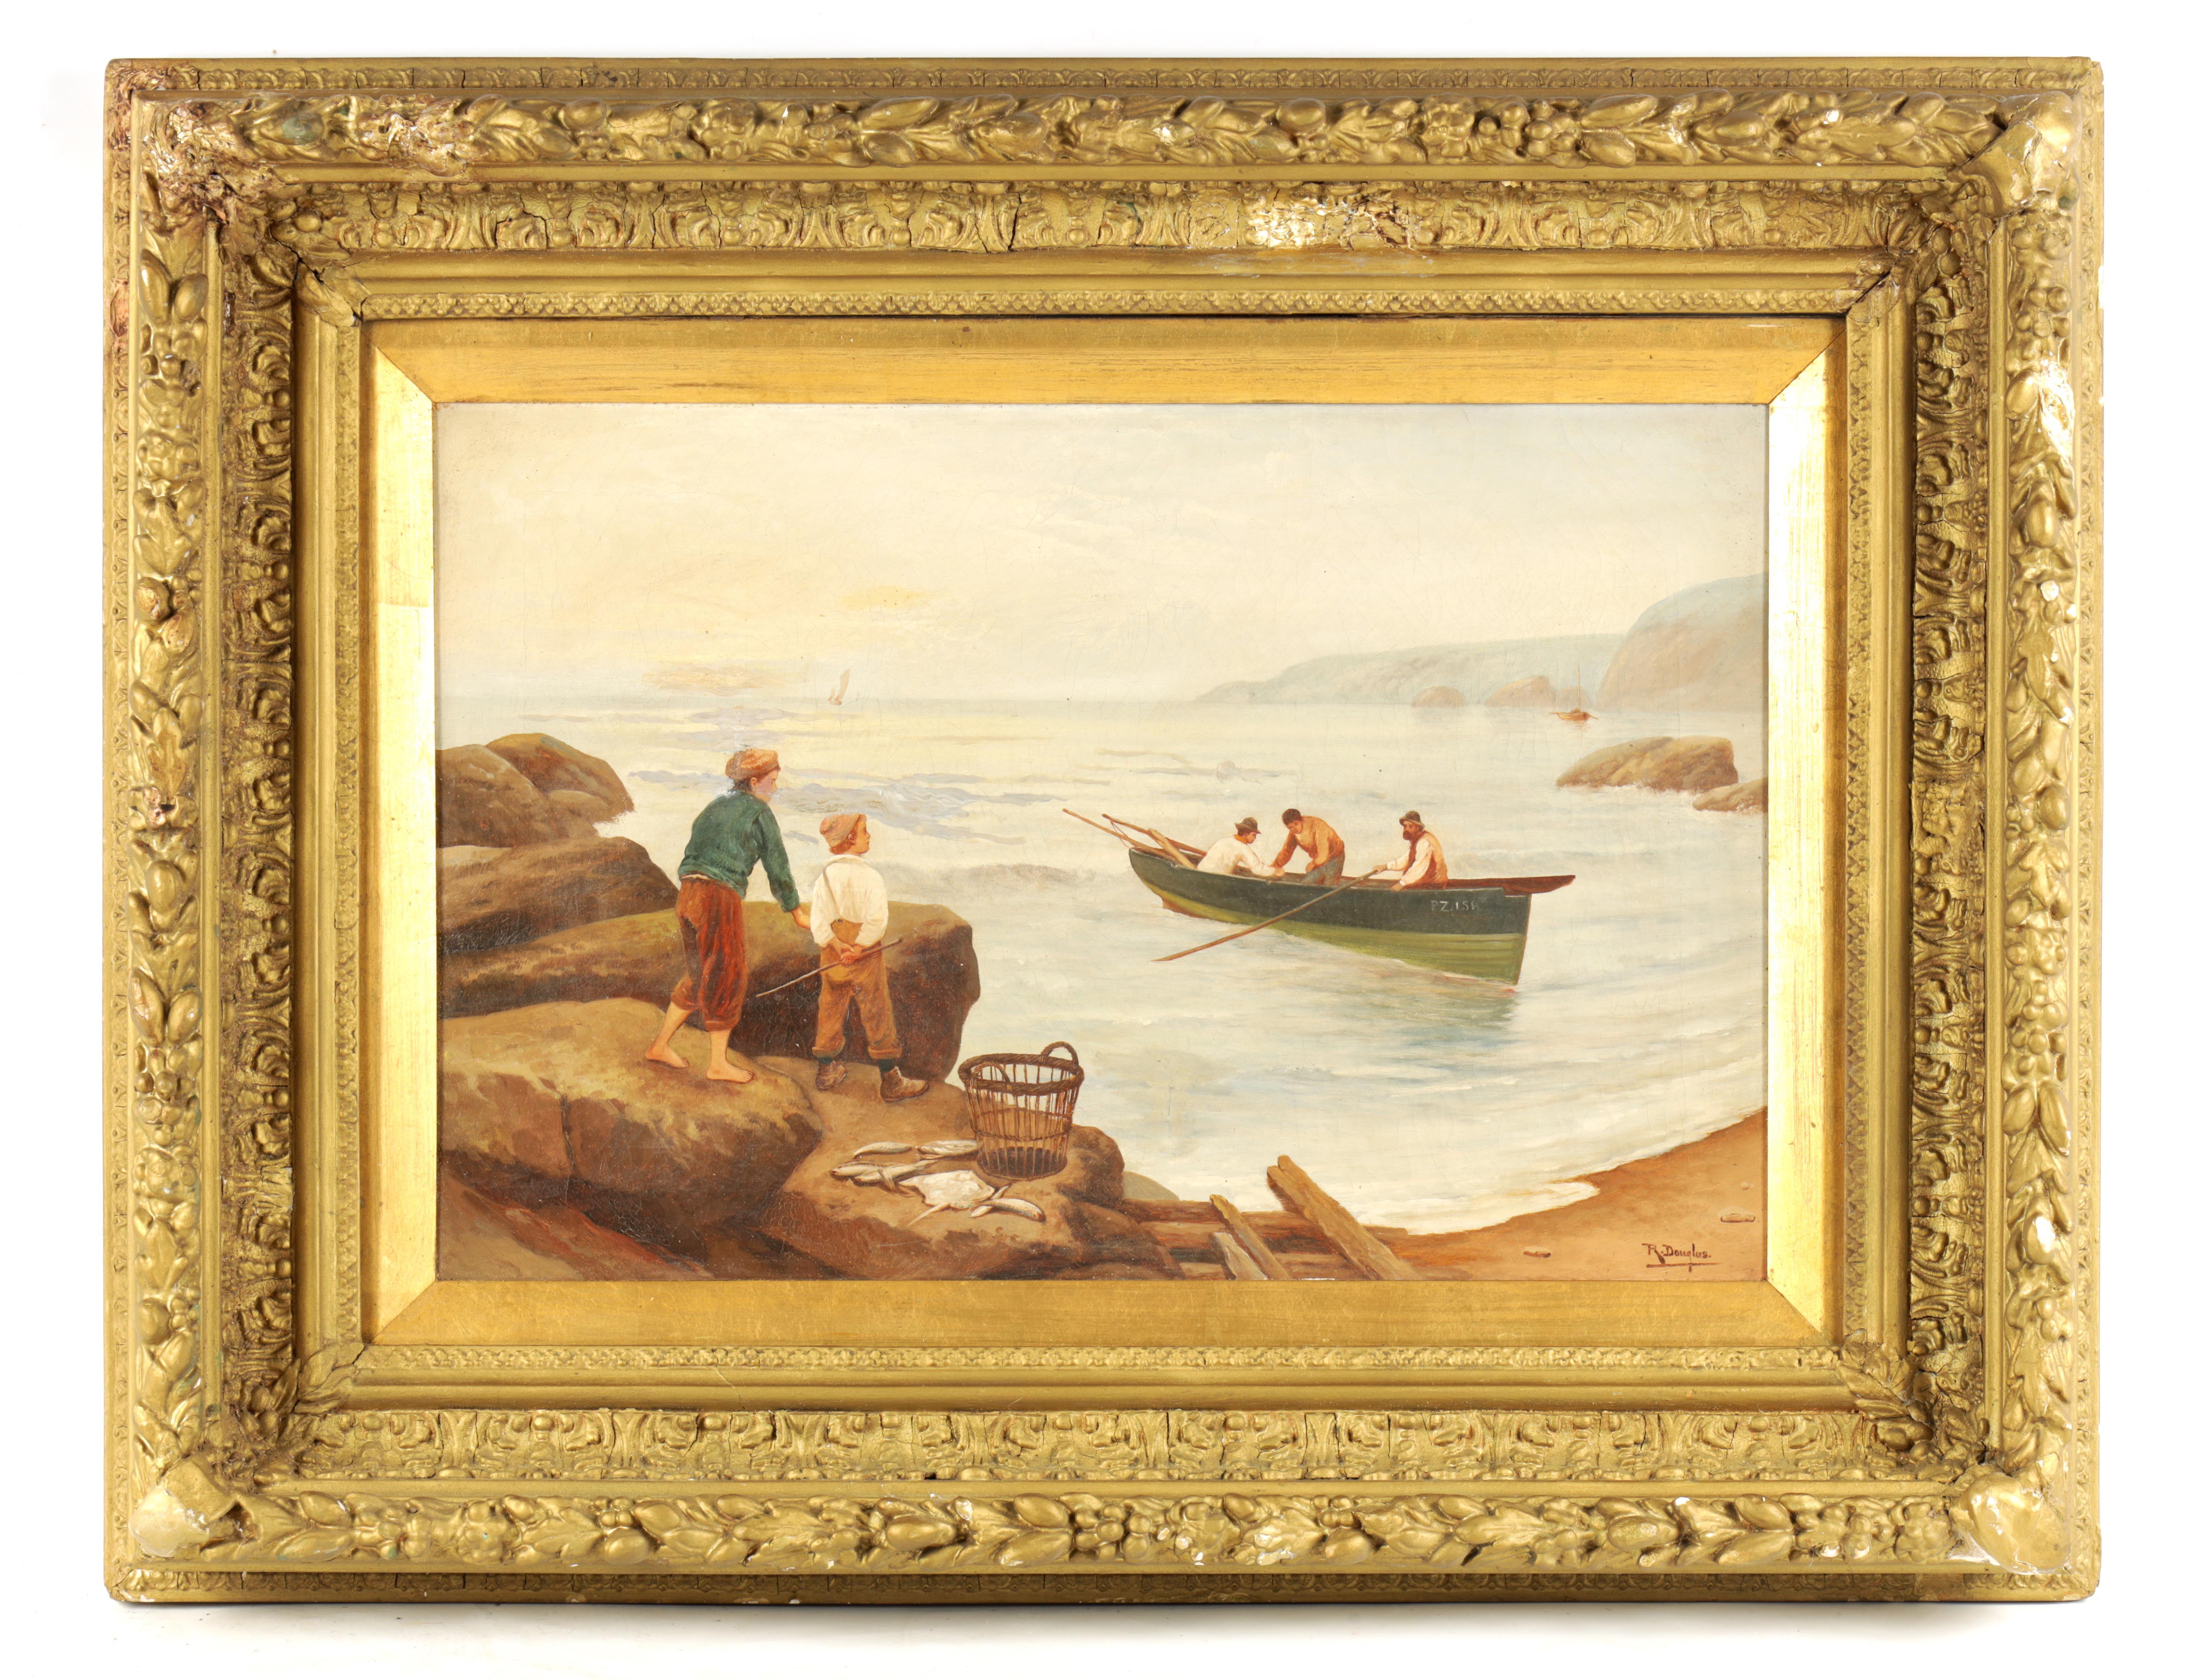 R DOUGLAS AN EARLY 20TH CENTURY OIL ON CANVAS Cornish beach with fisherman - signed 39cm high 60cm